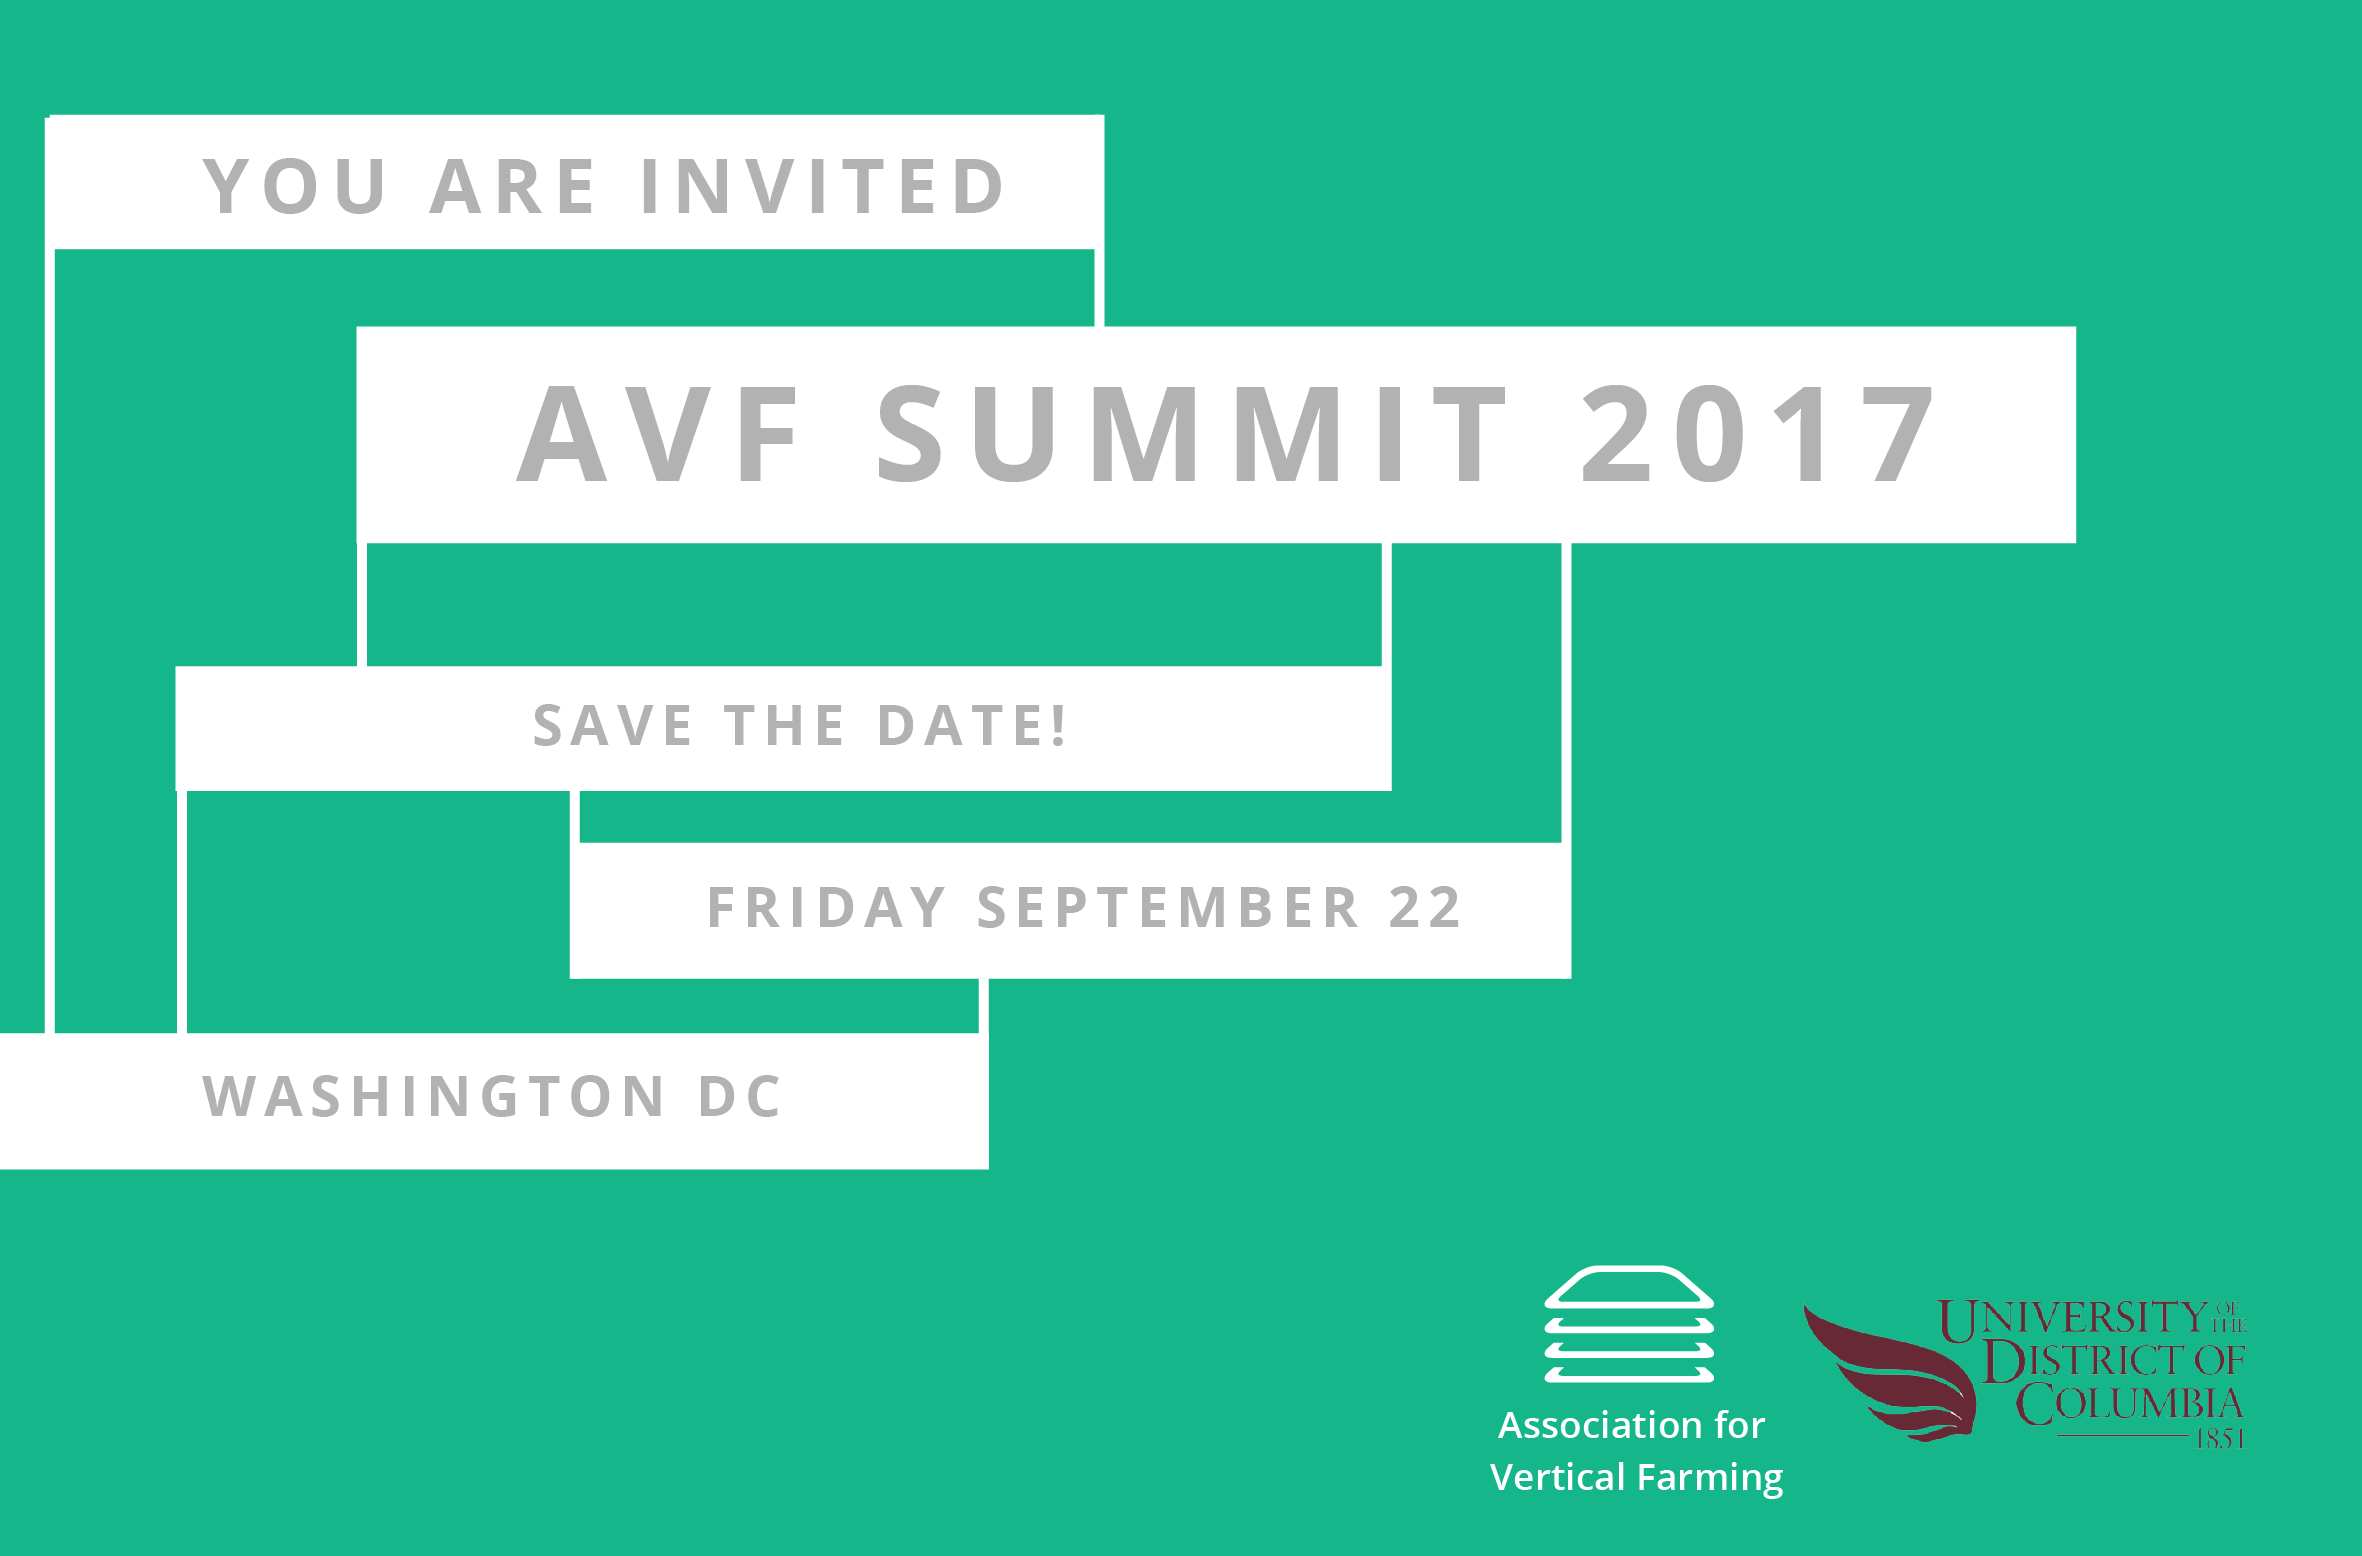 avf summit 2017-01.png